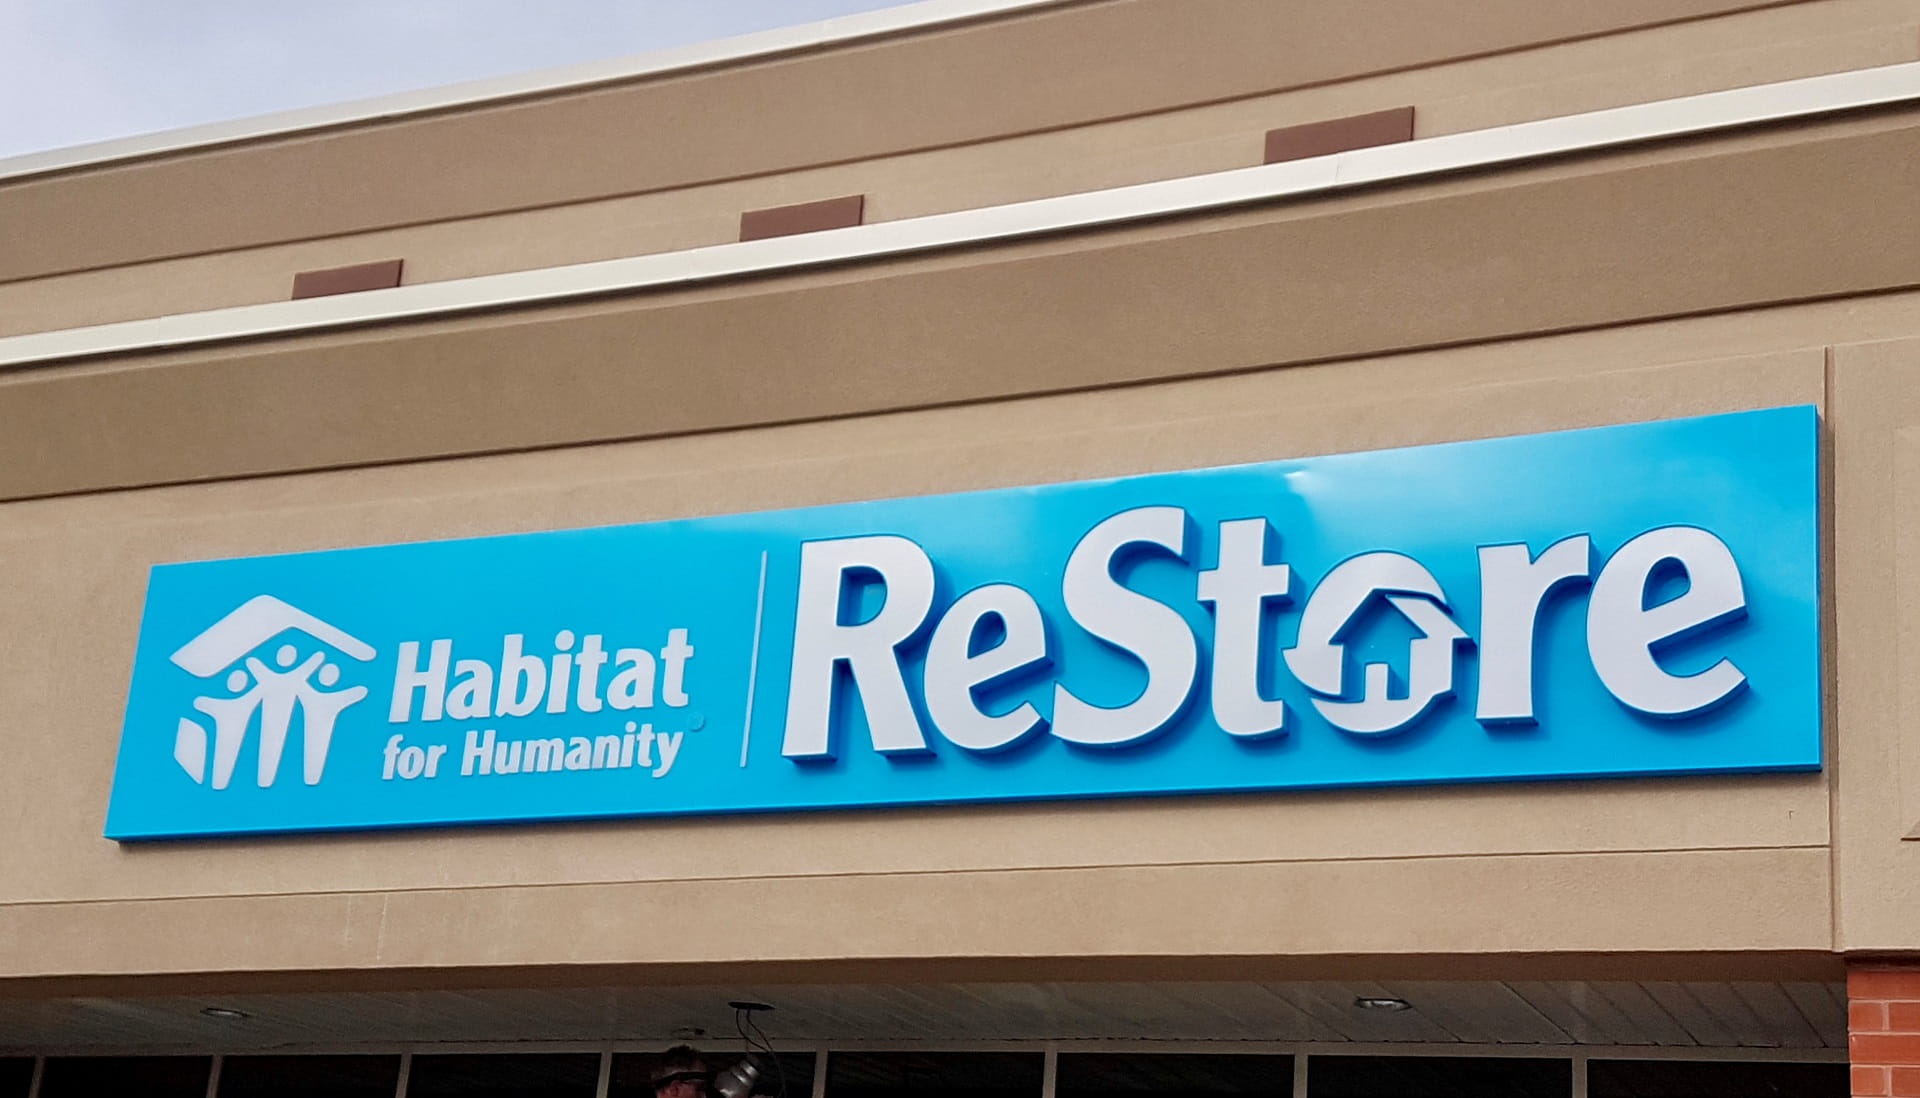 Habitat for Humanity storefront sign by signarama toronto